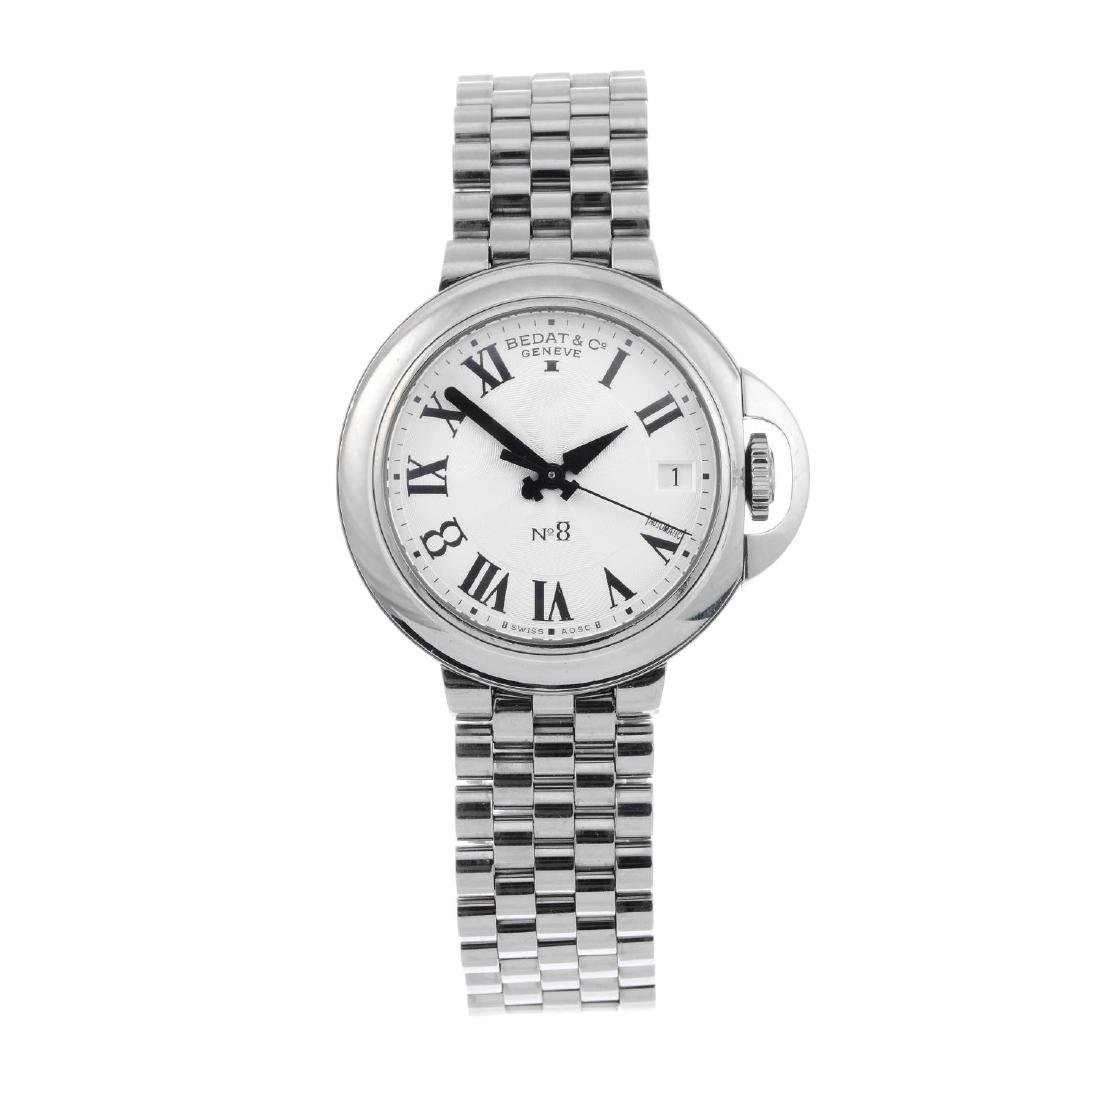 BEDAT & CO. - a lady's No. 8 bracelet watch. Stainless